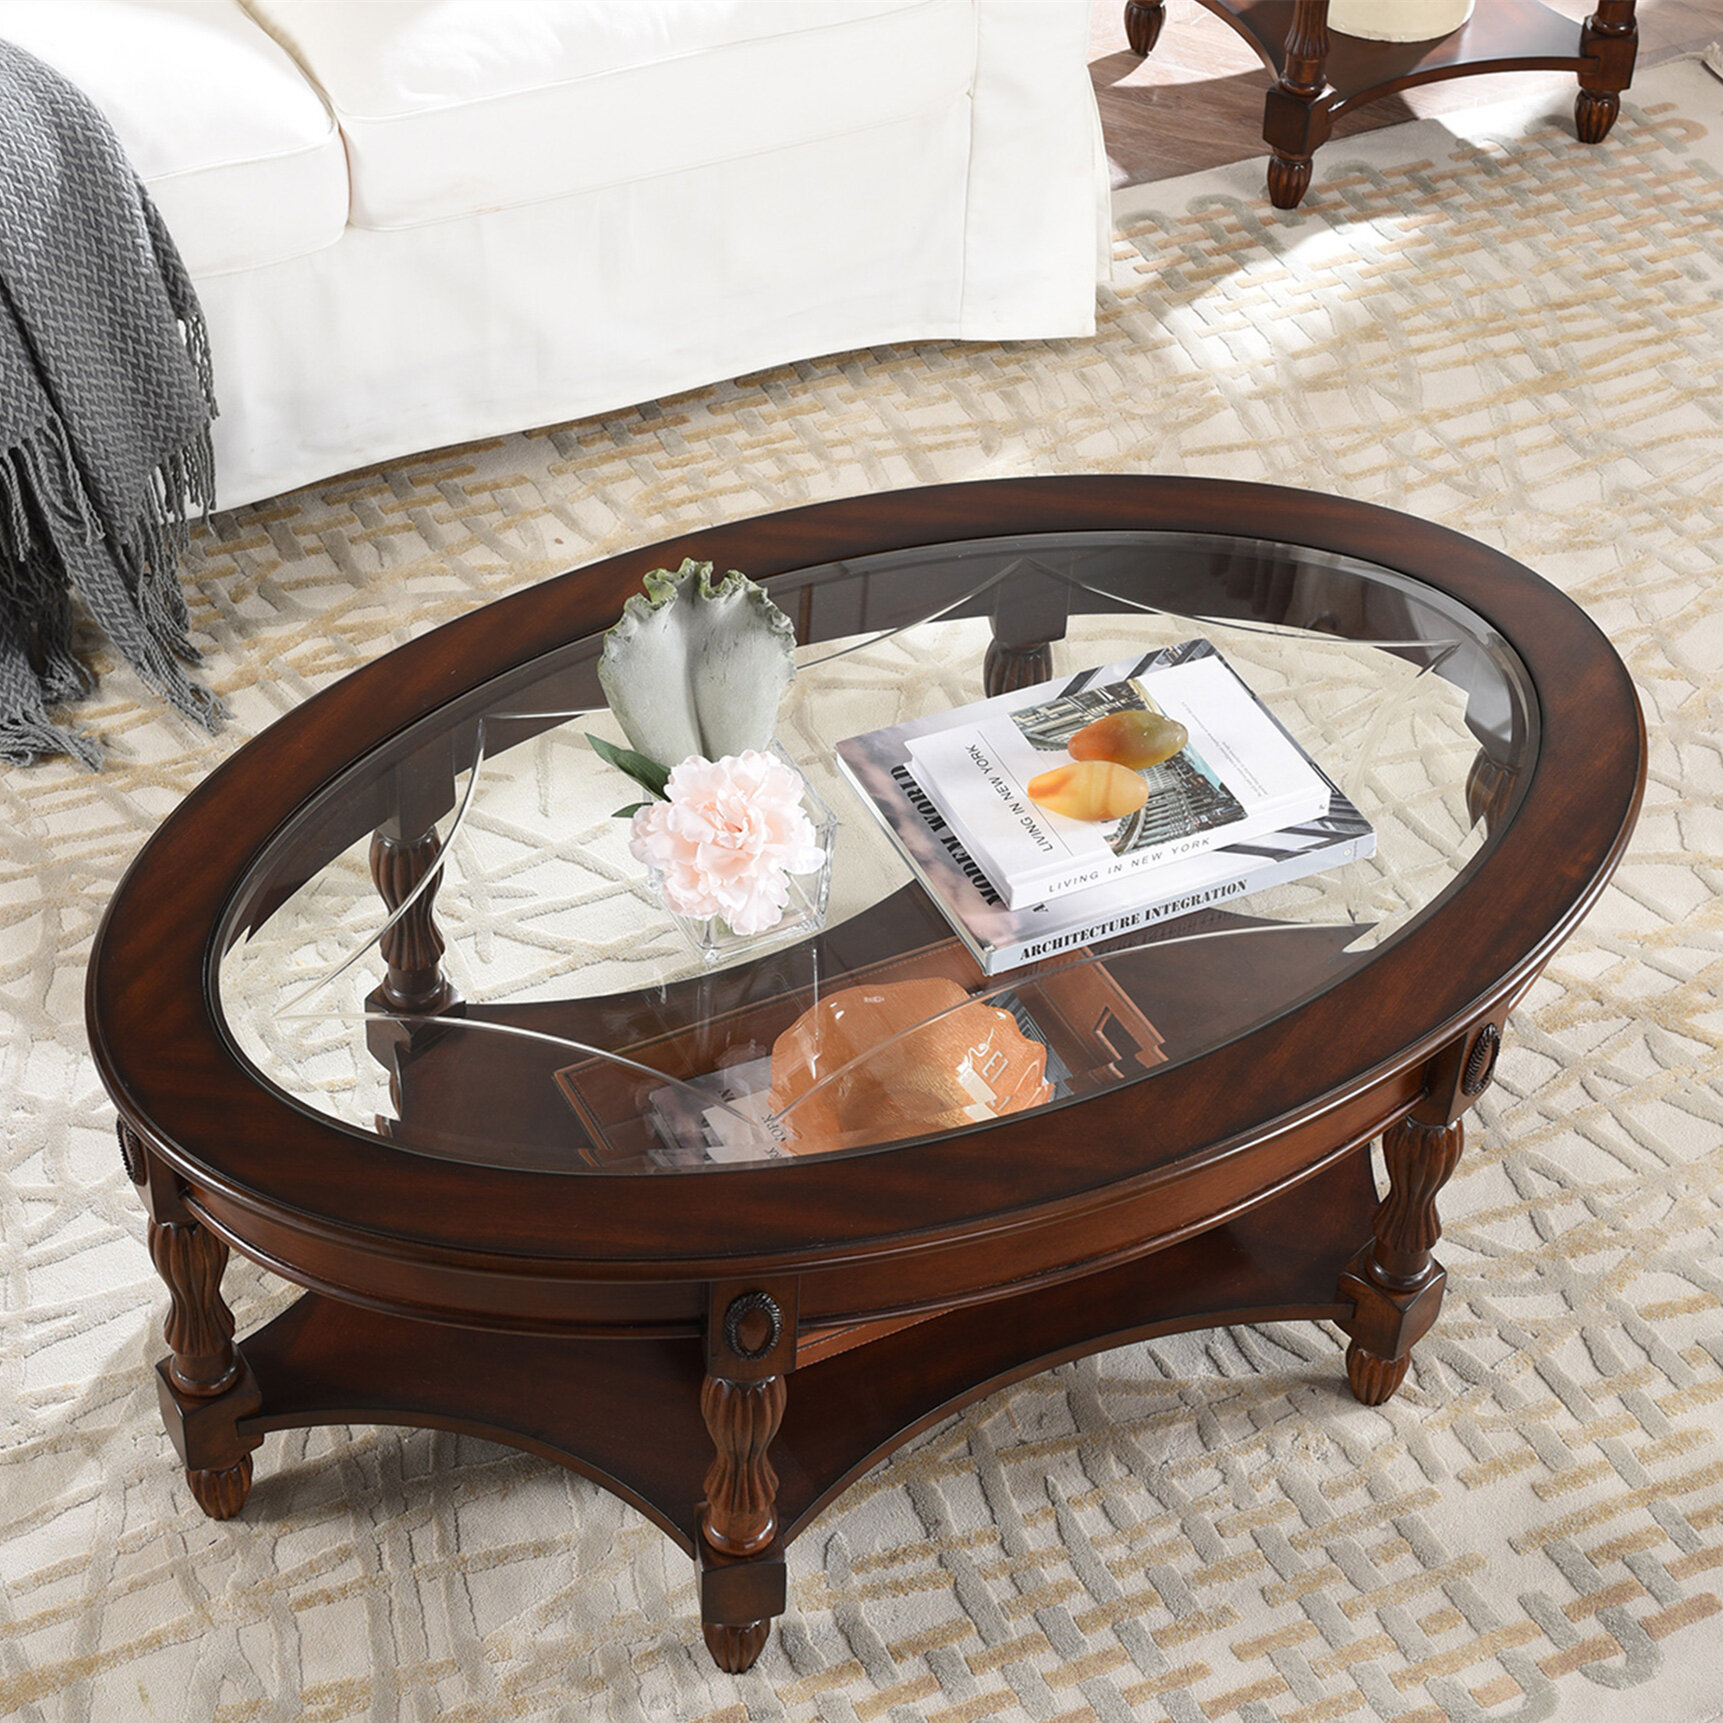 Storage Astoria Grand Coffee Tables You Ll Love In 2021 Wayfair